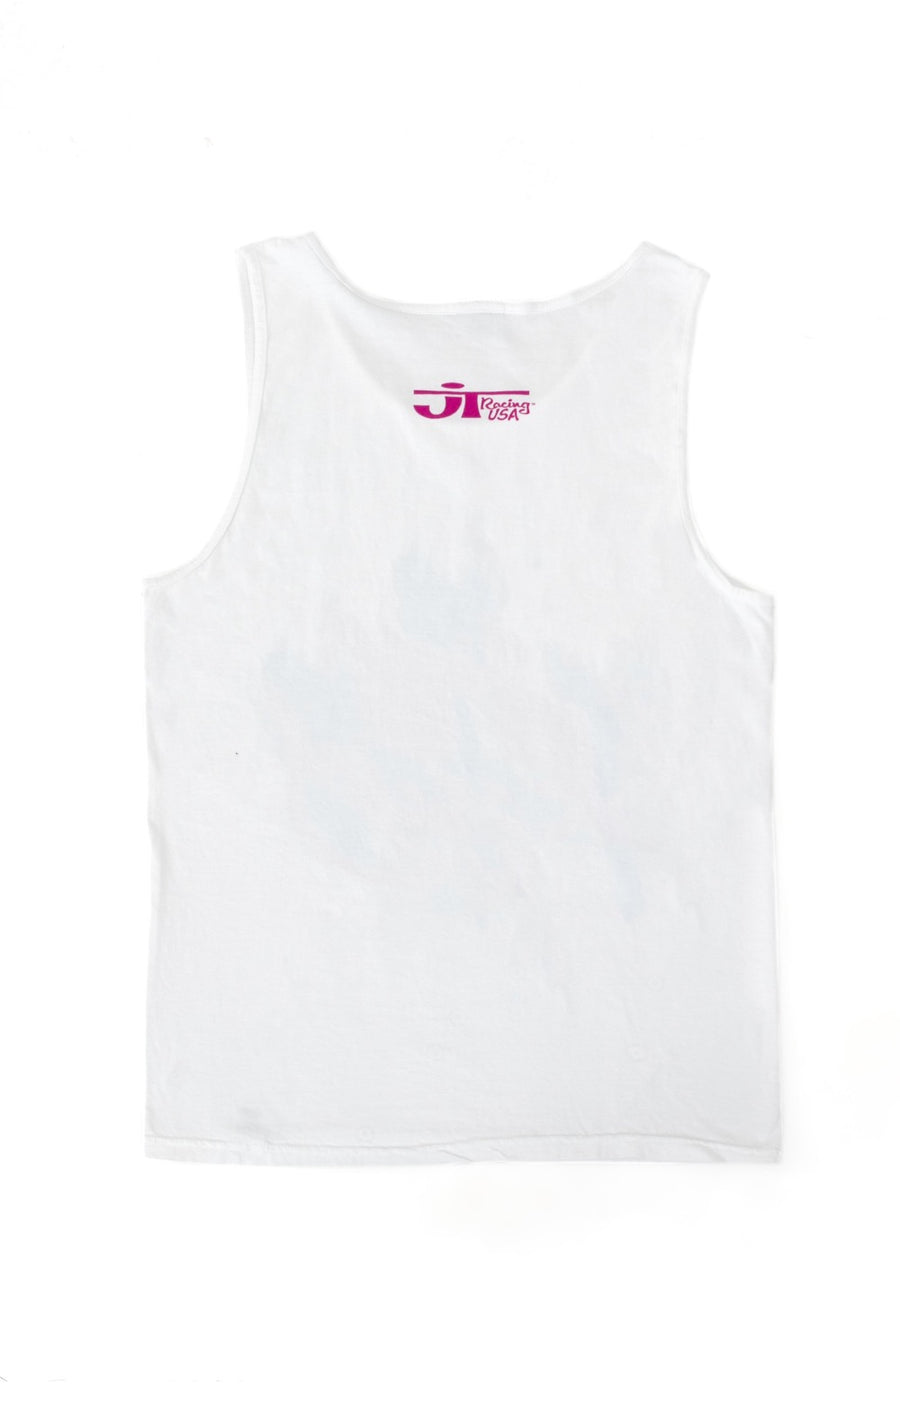 JT Speed Tank Top - Miami Vice Edition